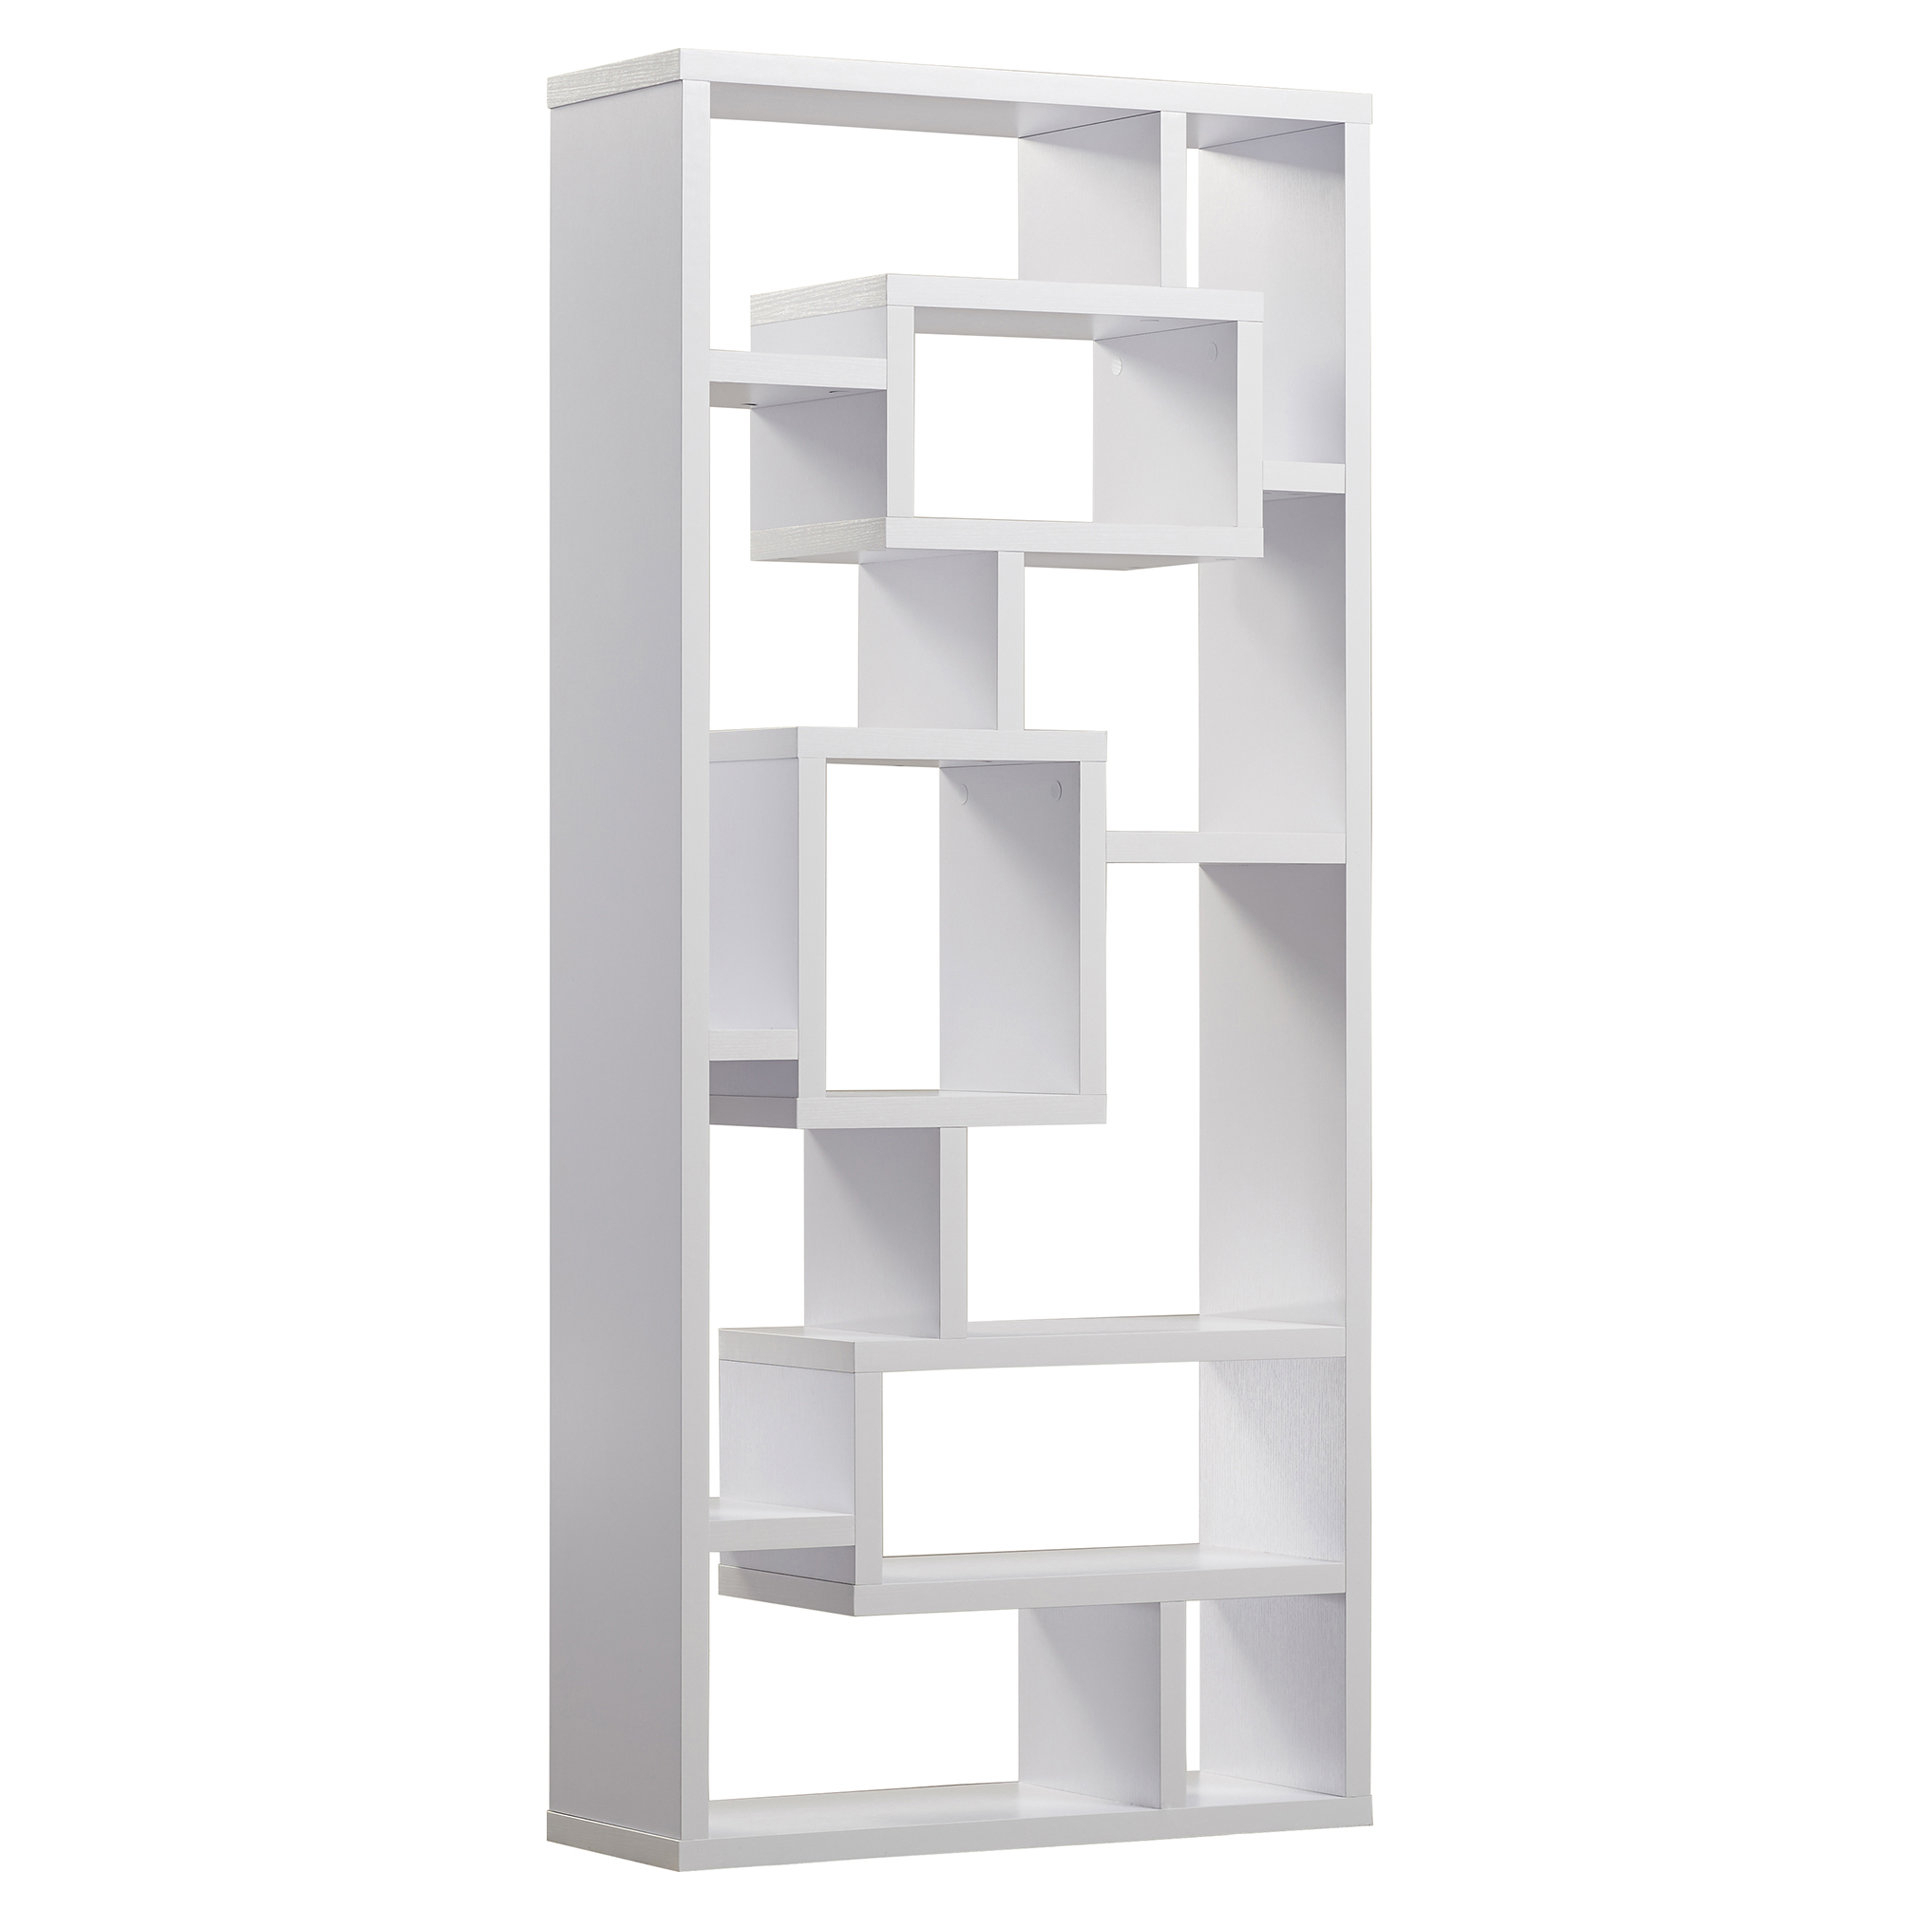 Cleisthenes Geometric Bookcases Regarding Most Current Cleisthenes Geometric Bookcase (View 9 of 20)